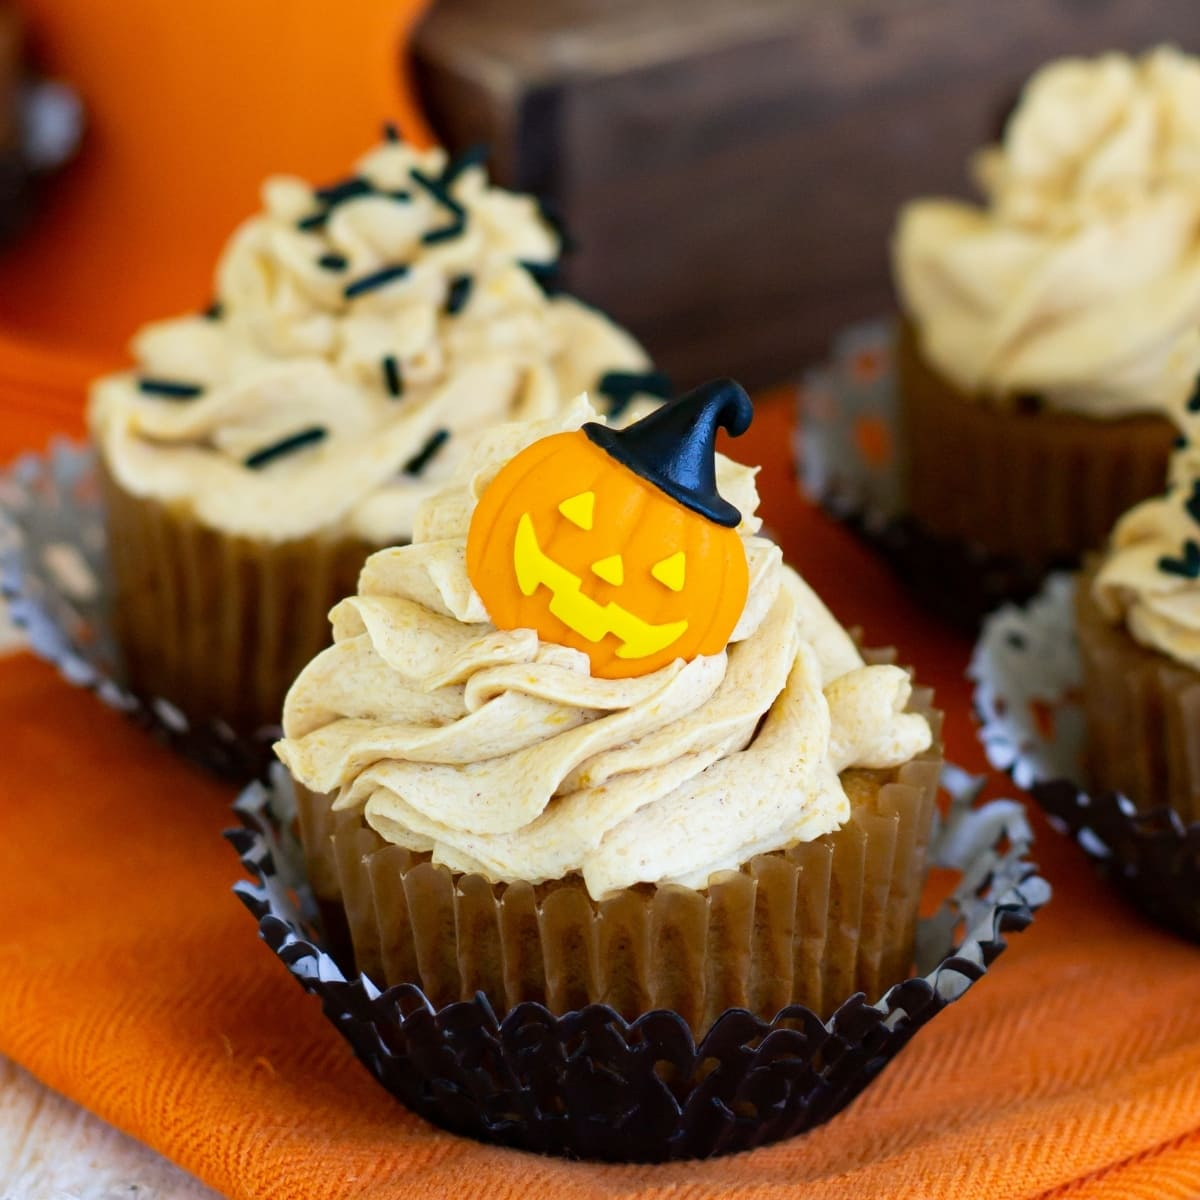 Pumpkin Cupcakes topped with Pumpkin Spice Buttercream Frosting and decorated for Halloween with candy pumpkins and sprinkles